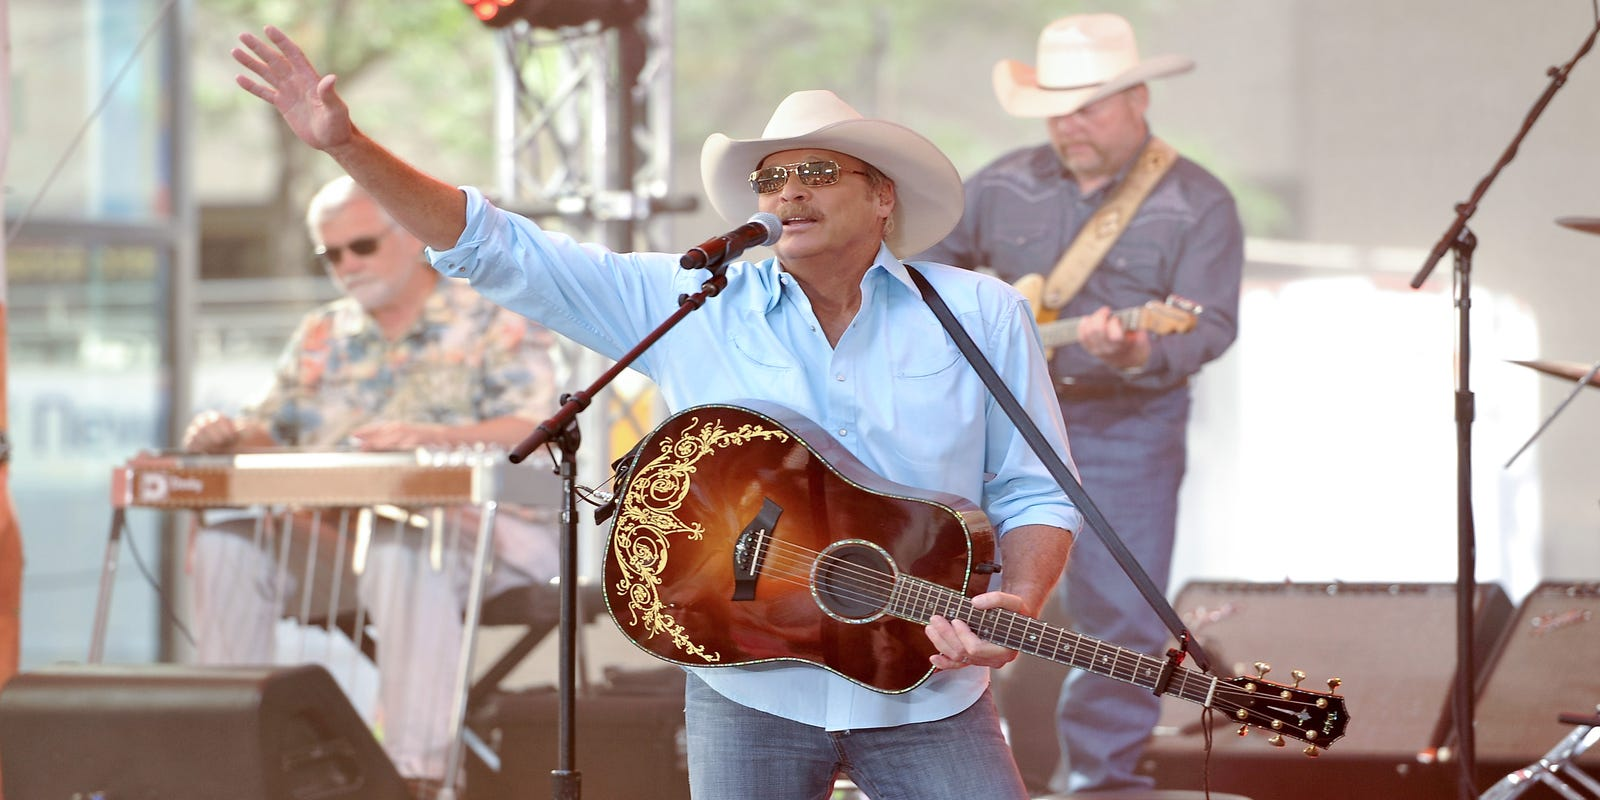 Alan Jackson tickets go on sale Friday for his 2020 Des Moines concert